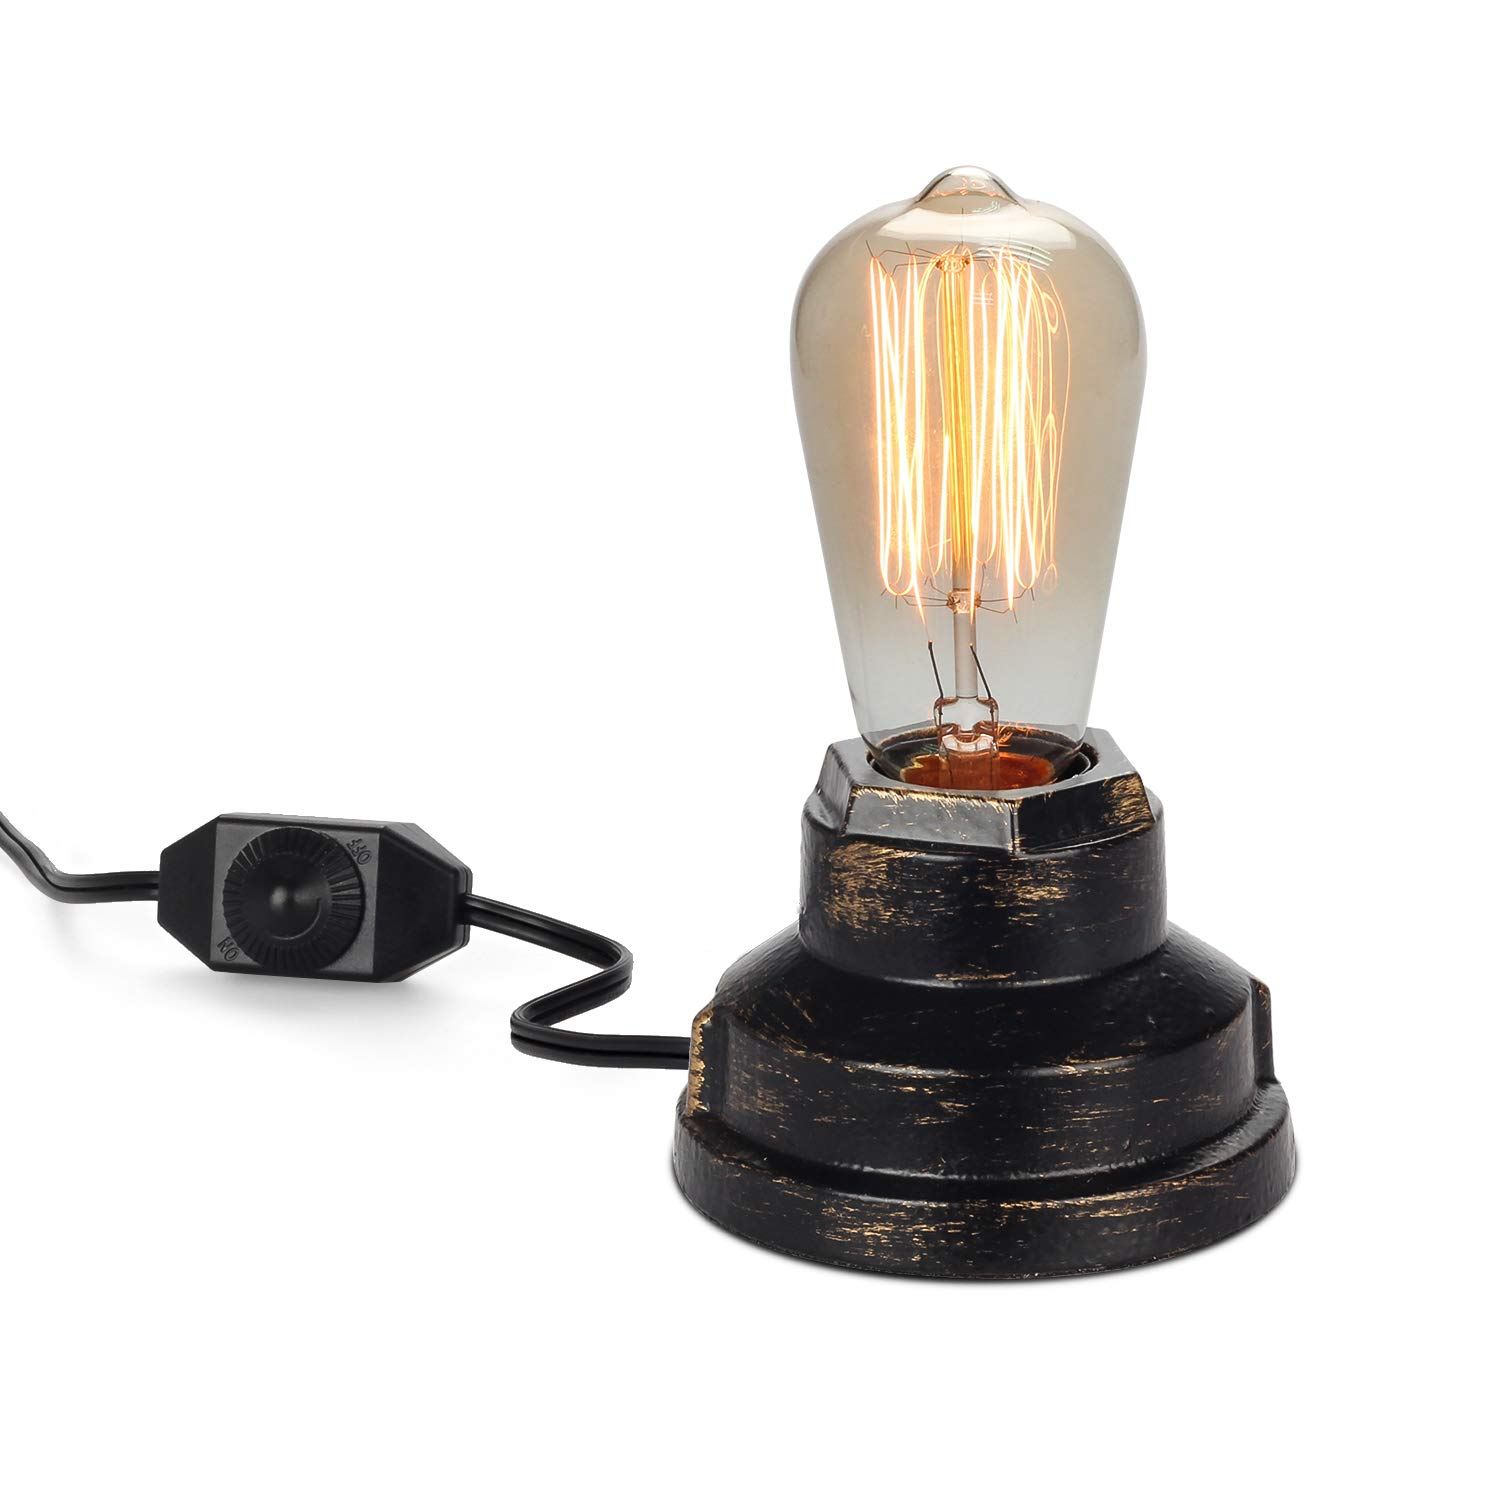 Vintage Table Lamp Industrial Wrought Iron Desk Lamp with Dimmer Switch Steampunk Antique Accent Lamp with E26 Edison Base Retro Lamp Holder Table Light Fixture Loft Decoration for Living Room Bedside by Seaside village